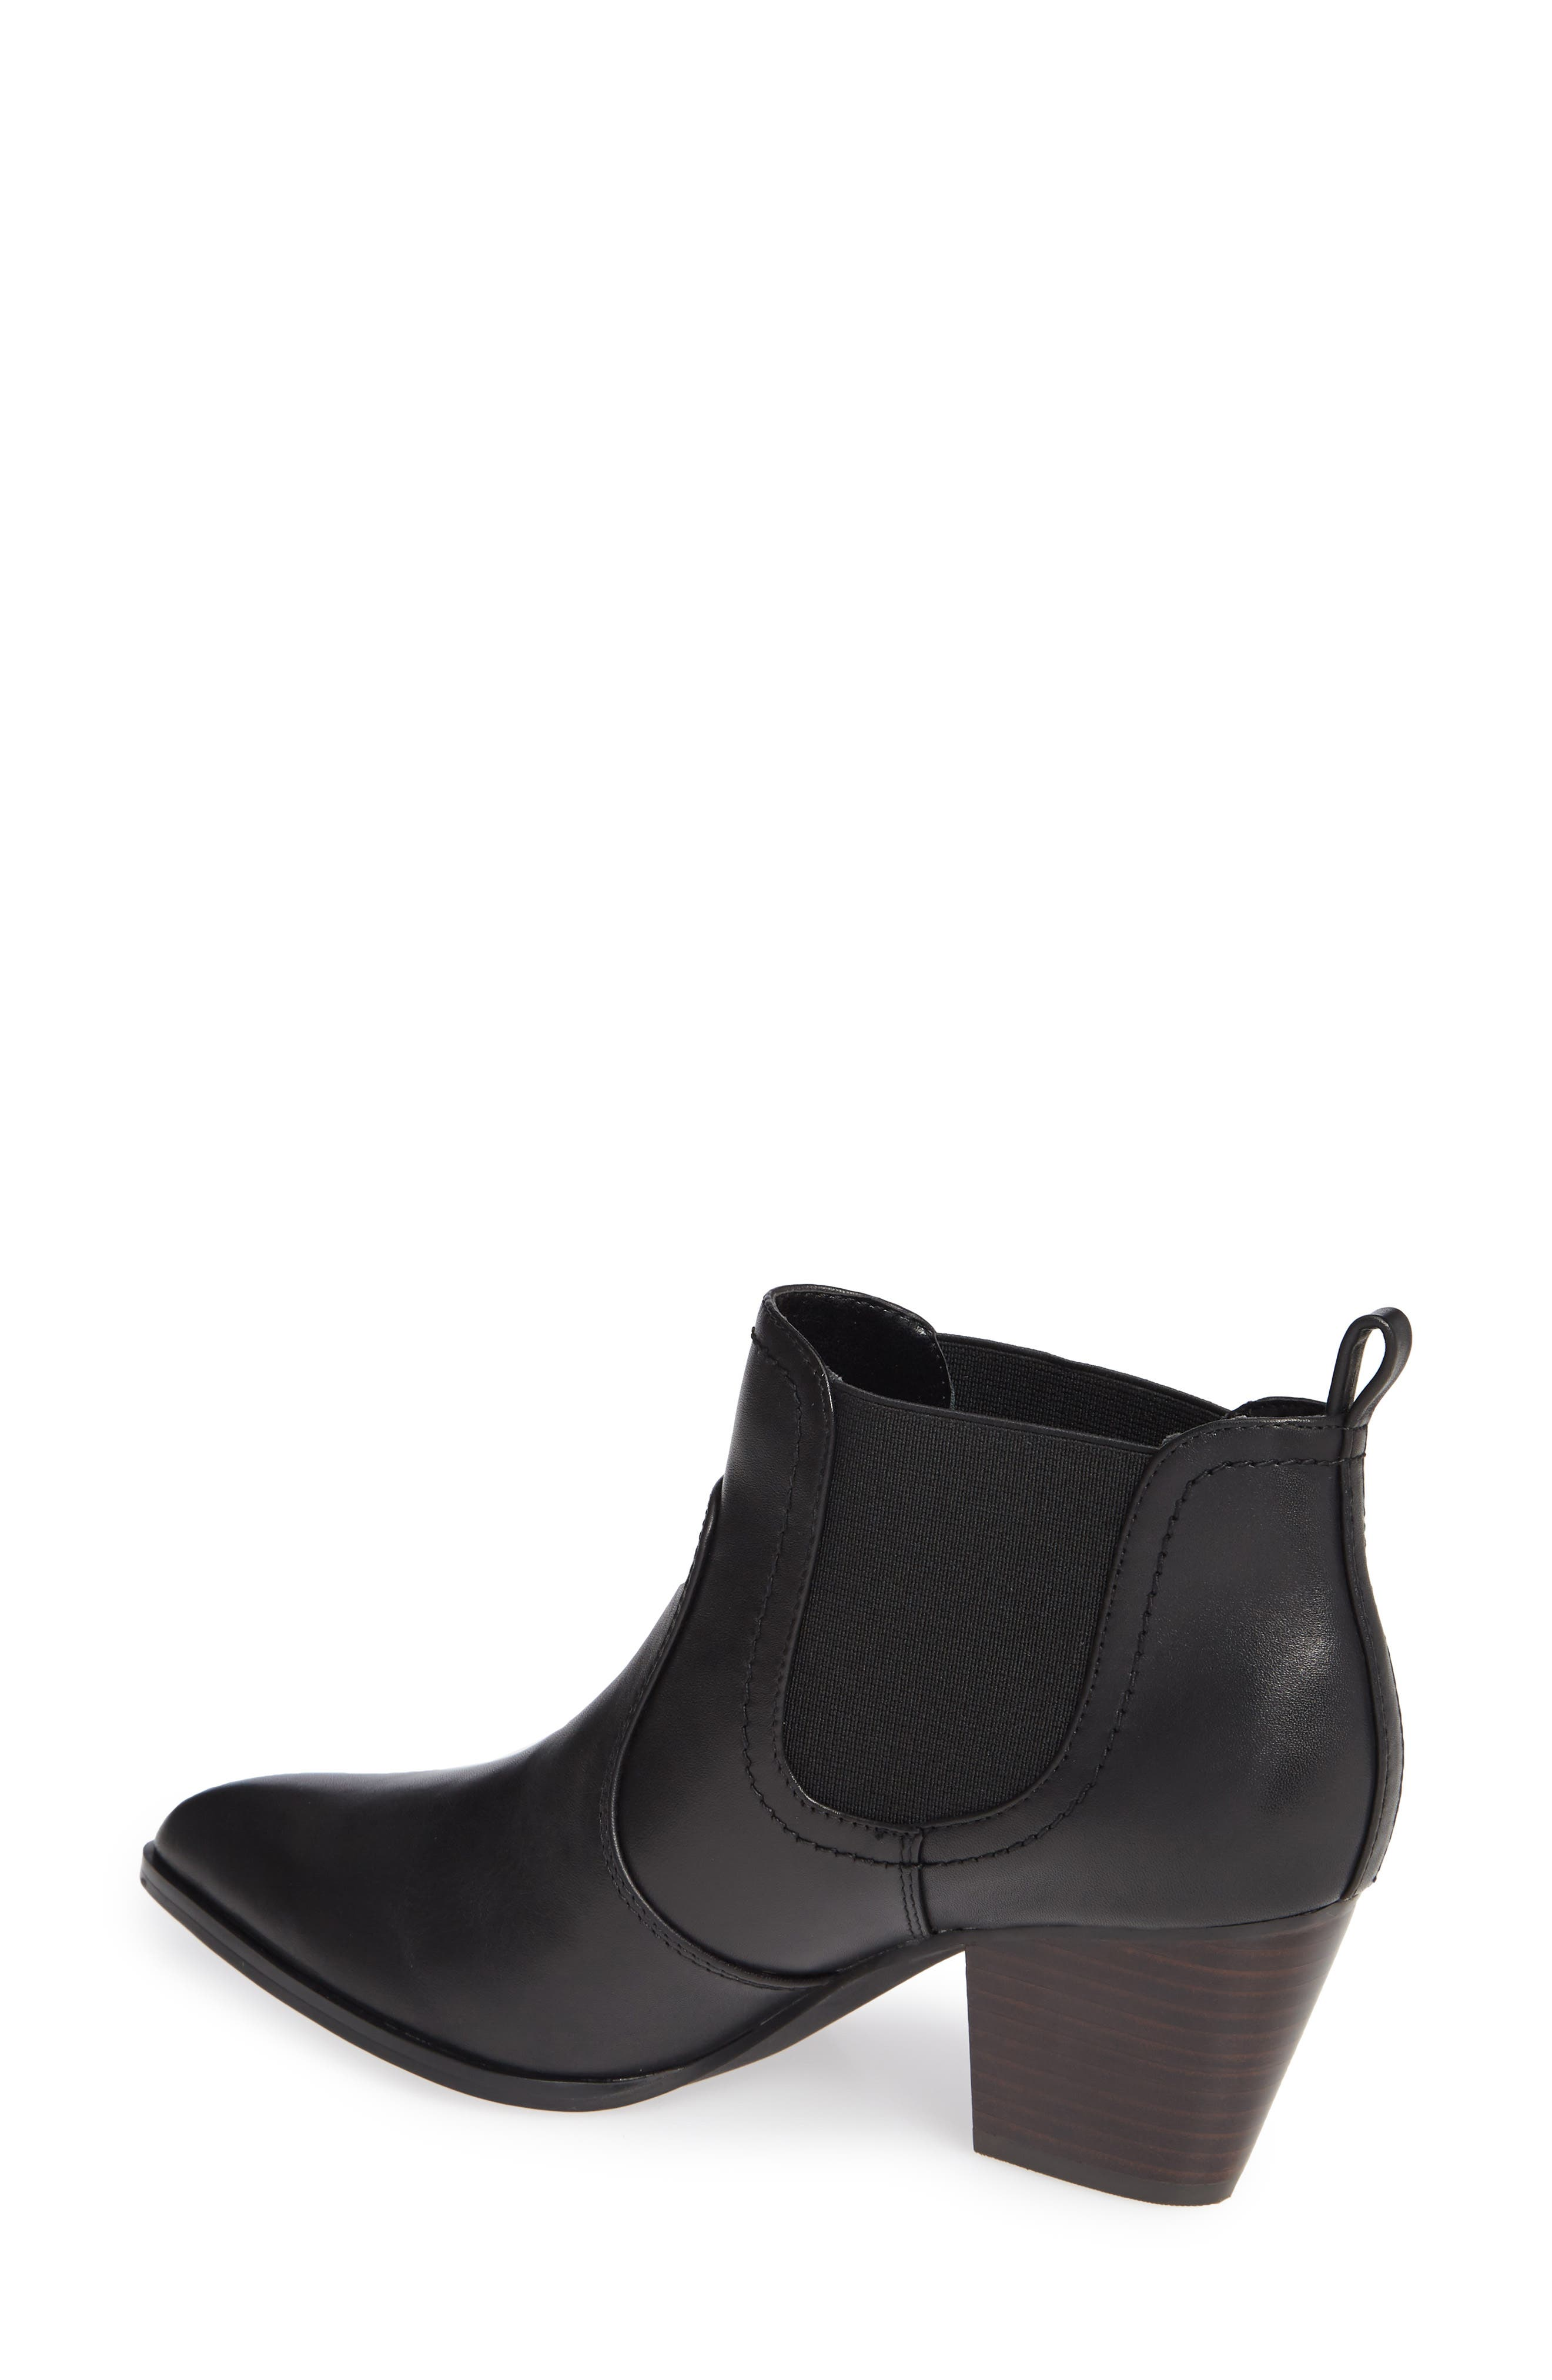 BELLA VITA, Emerson Chelsea Bootie, Alternate thumbnail 2, color, BLACK LEATHER